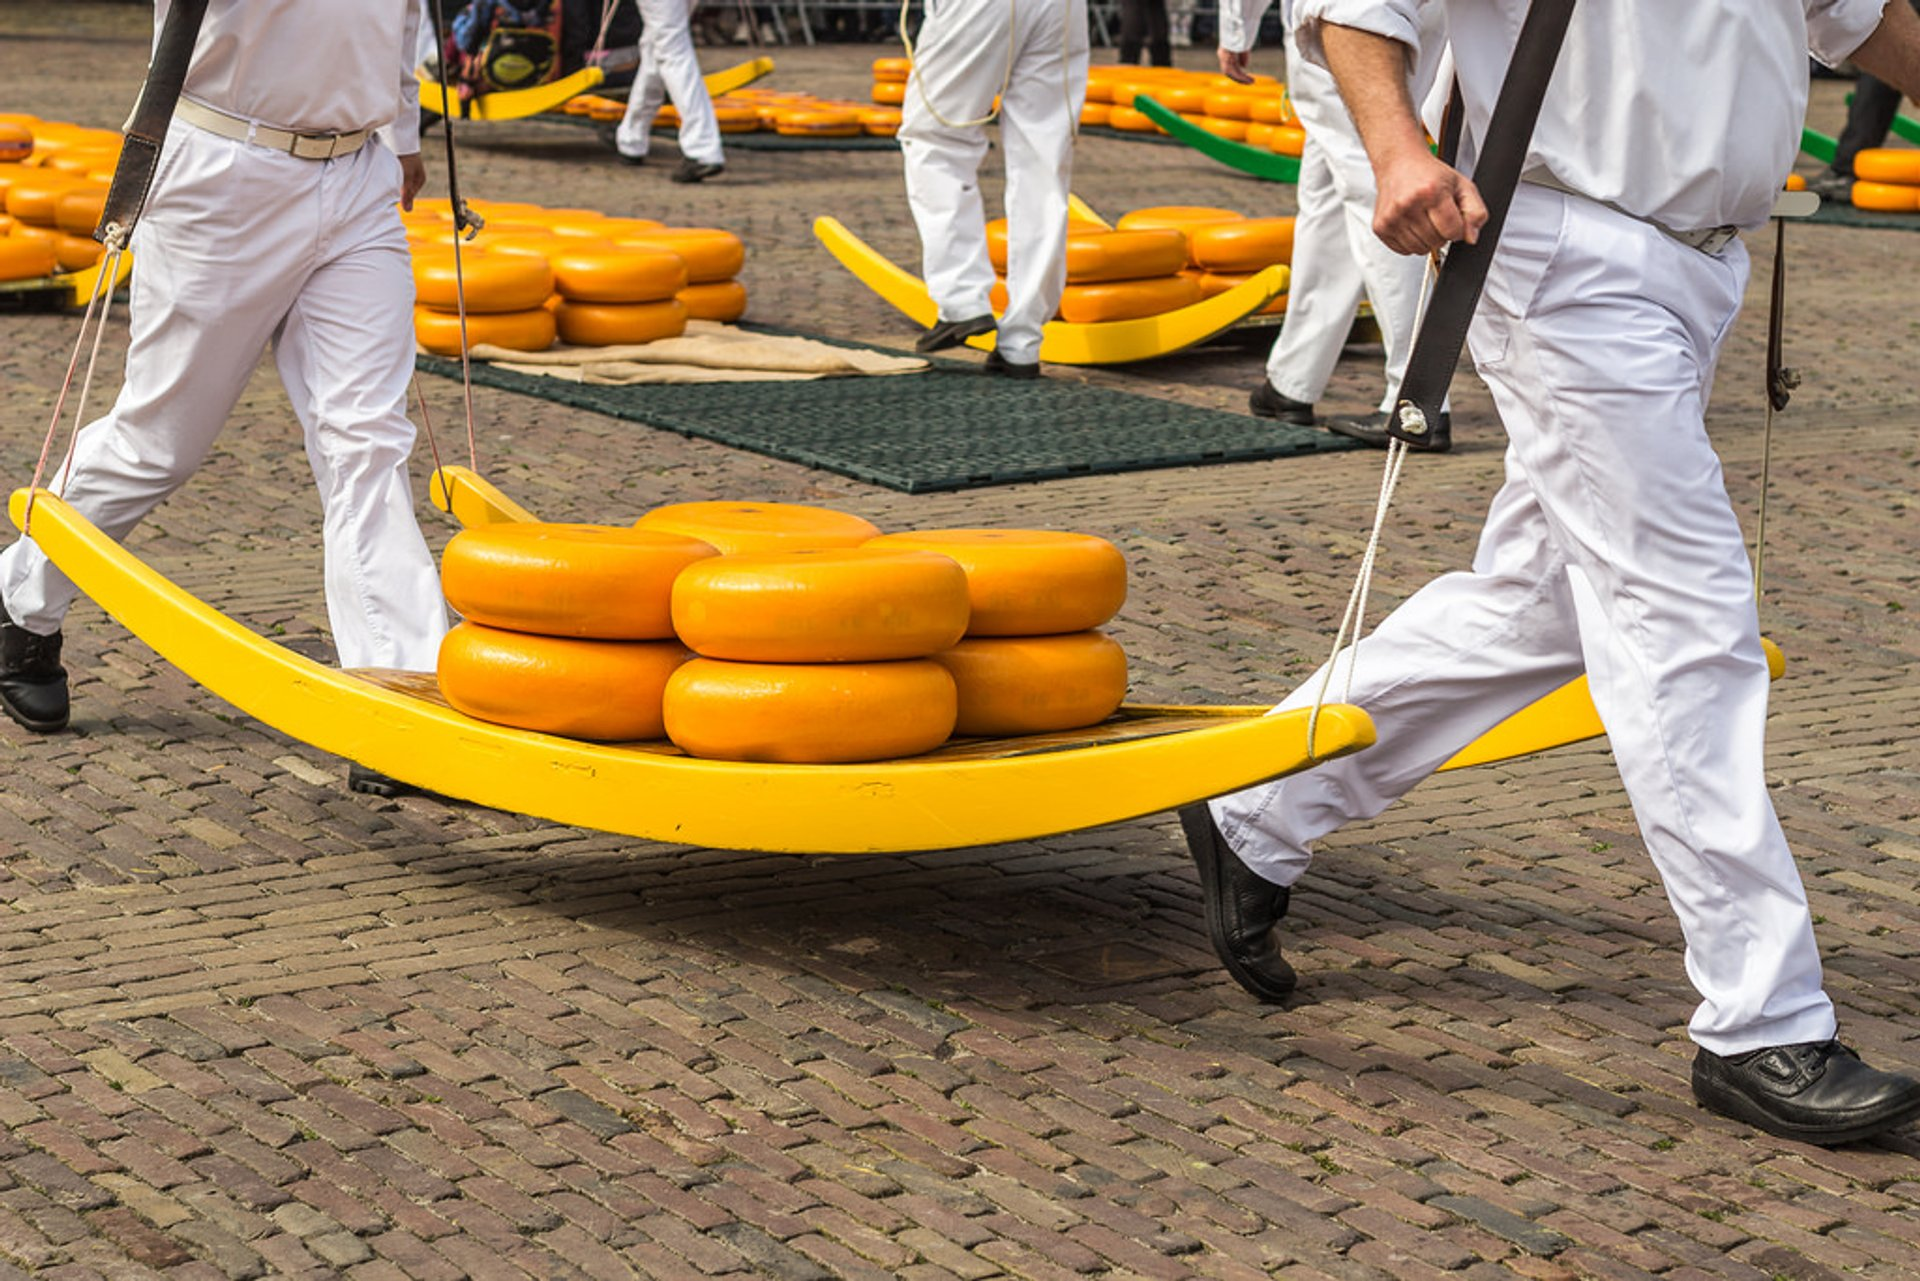 Alkmaar Cheese Market in The Netherlands 2019 - Best Time